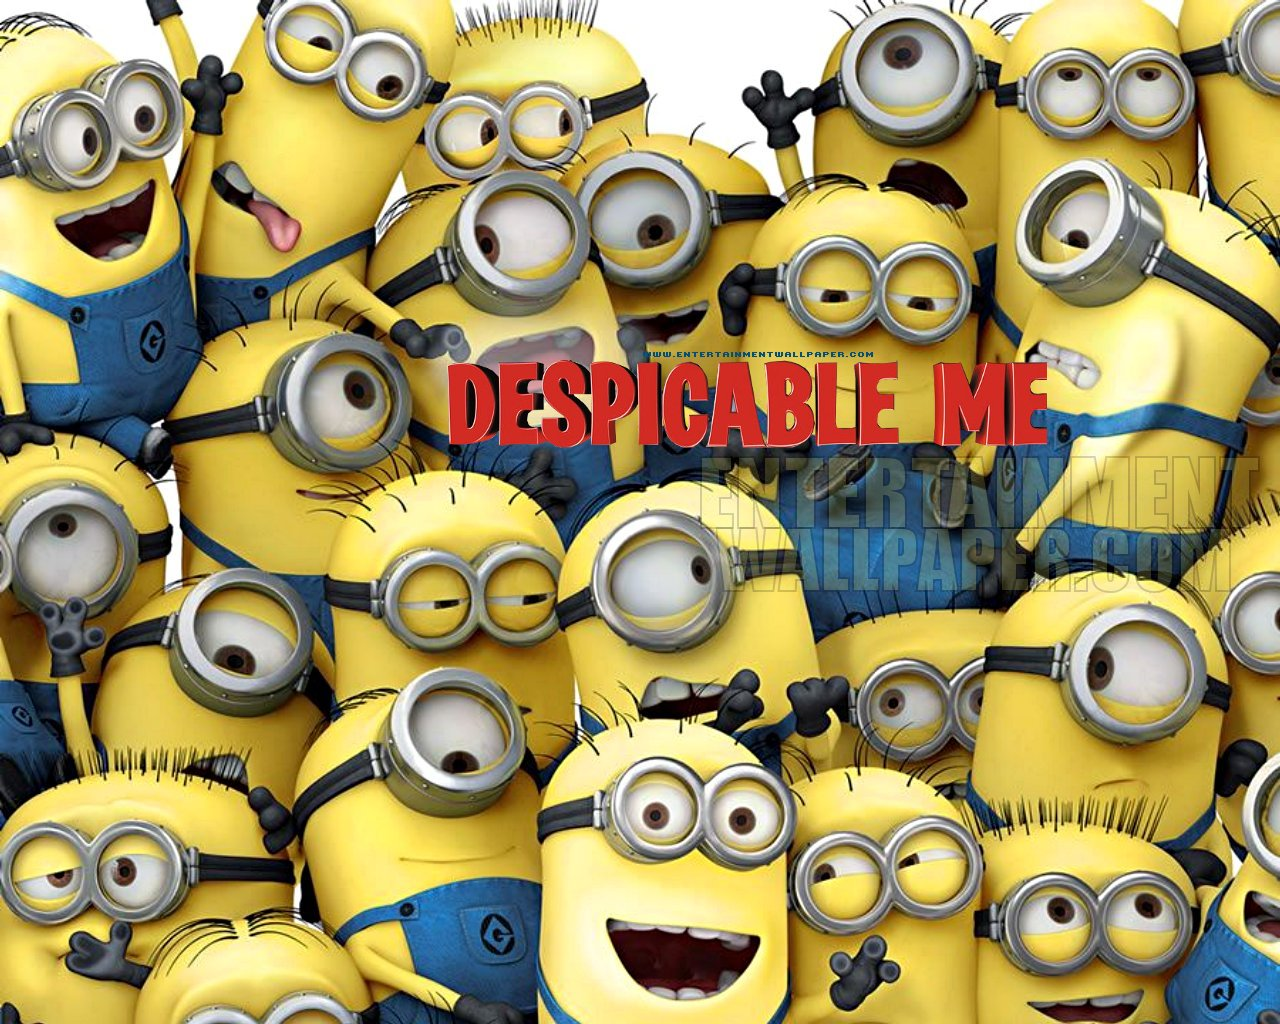 Despicable Me 3 Full Movie - 2017 Full Movie